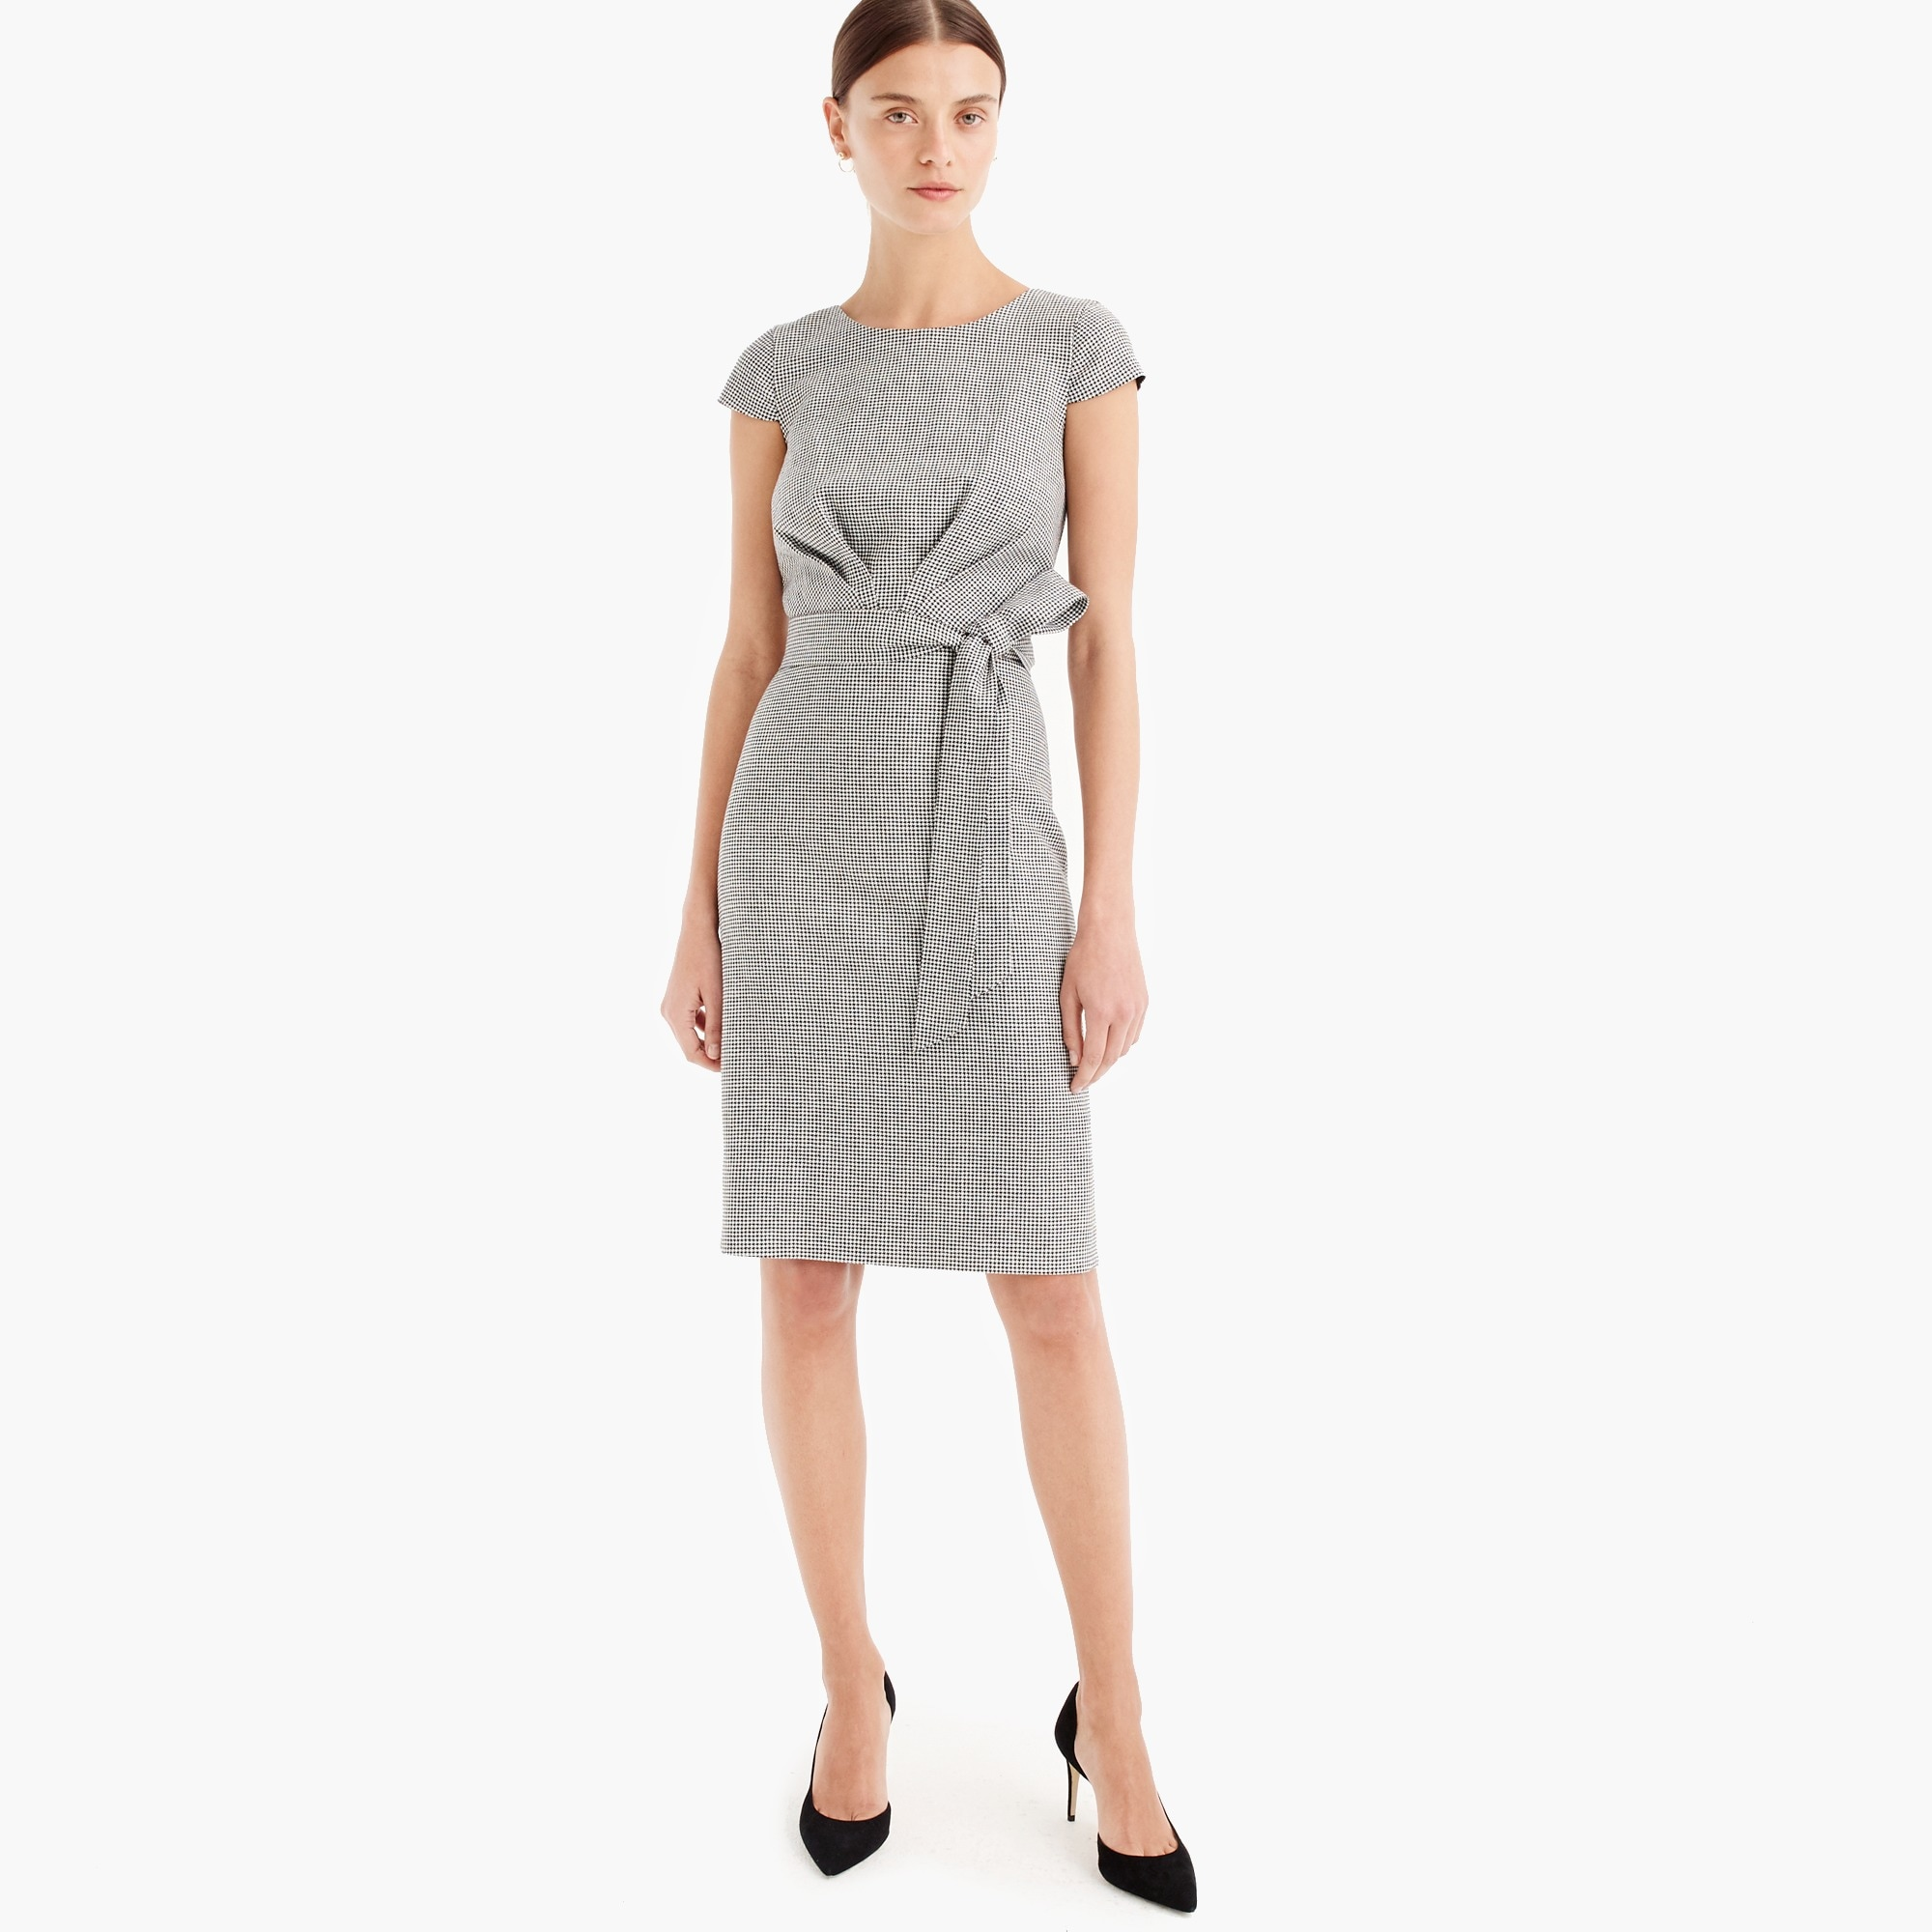 Image 1 for Tie-front dress in mini-houndstooth